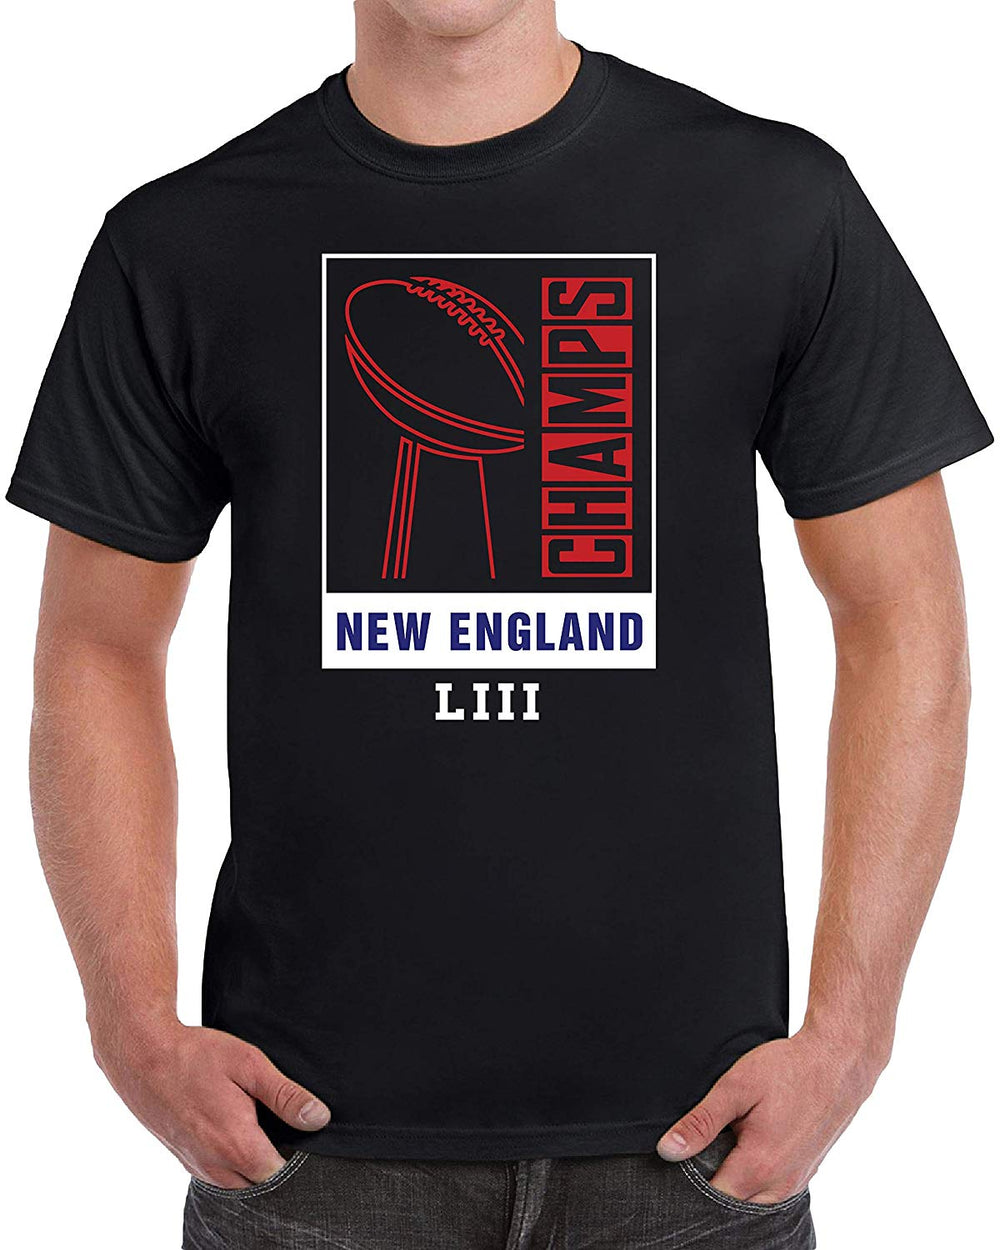 New England Champions Football - Black